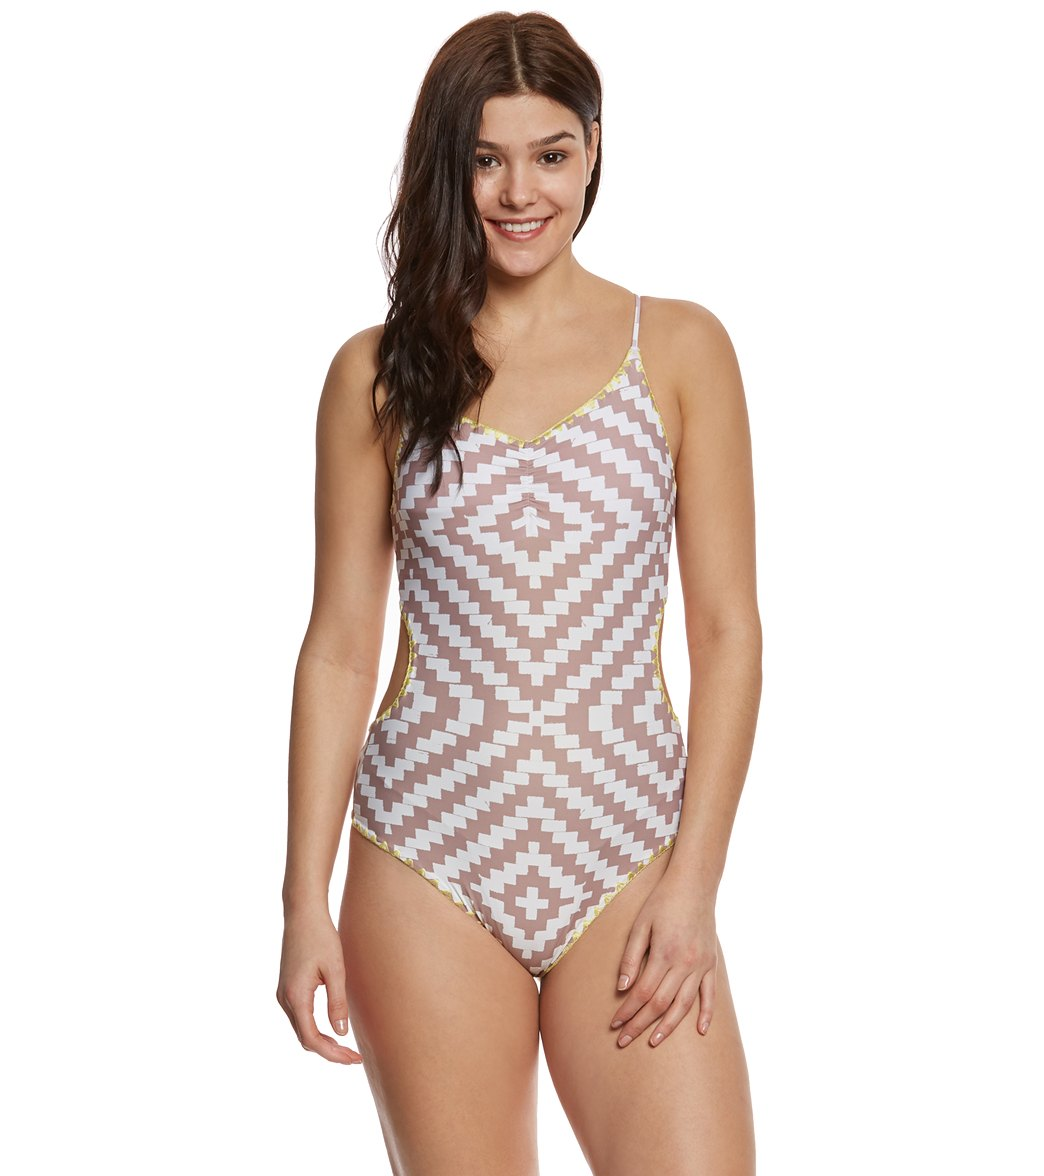 782948e7ee O'Neill Swimwear Surf Bazaar One Piece Swimsuit at SwimOutlet.com - Free  Shipping